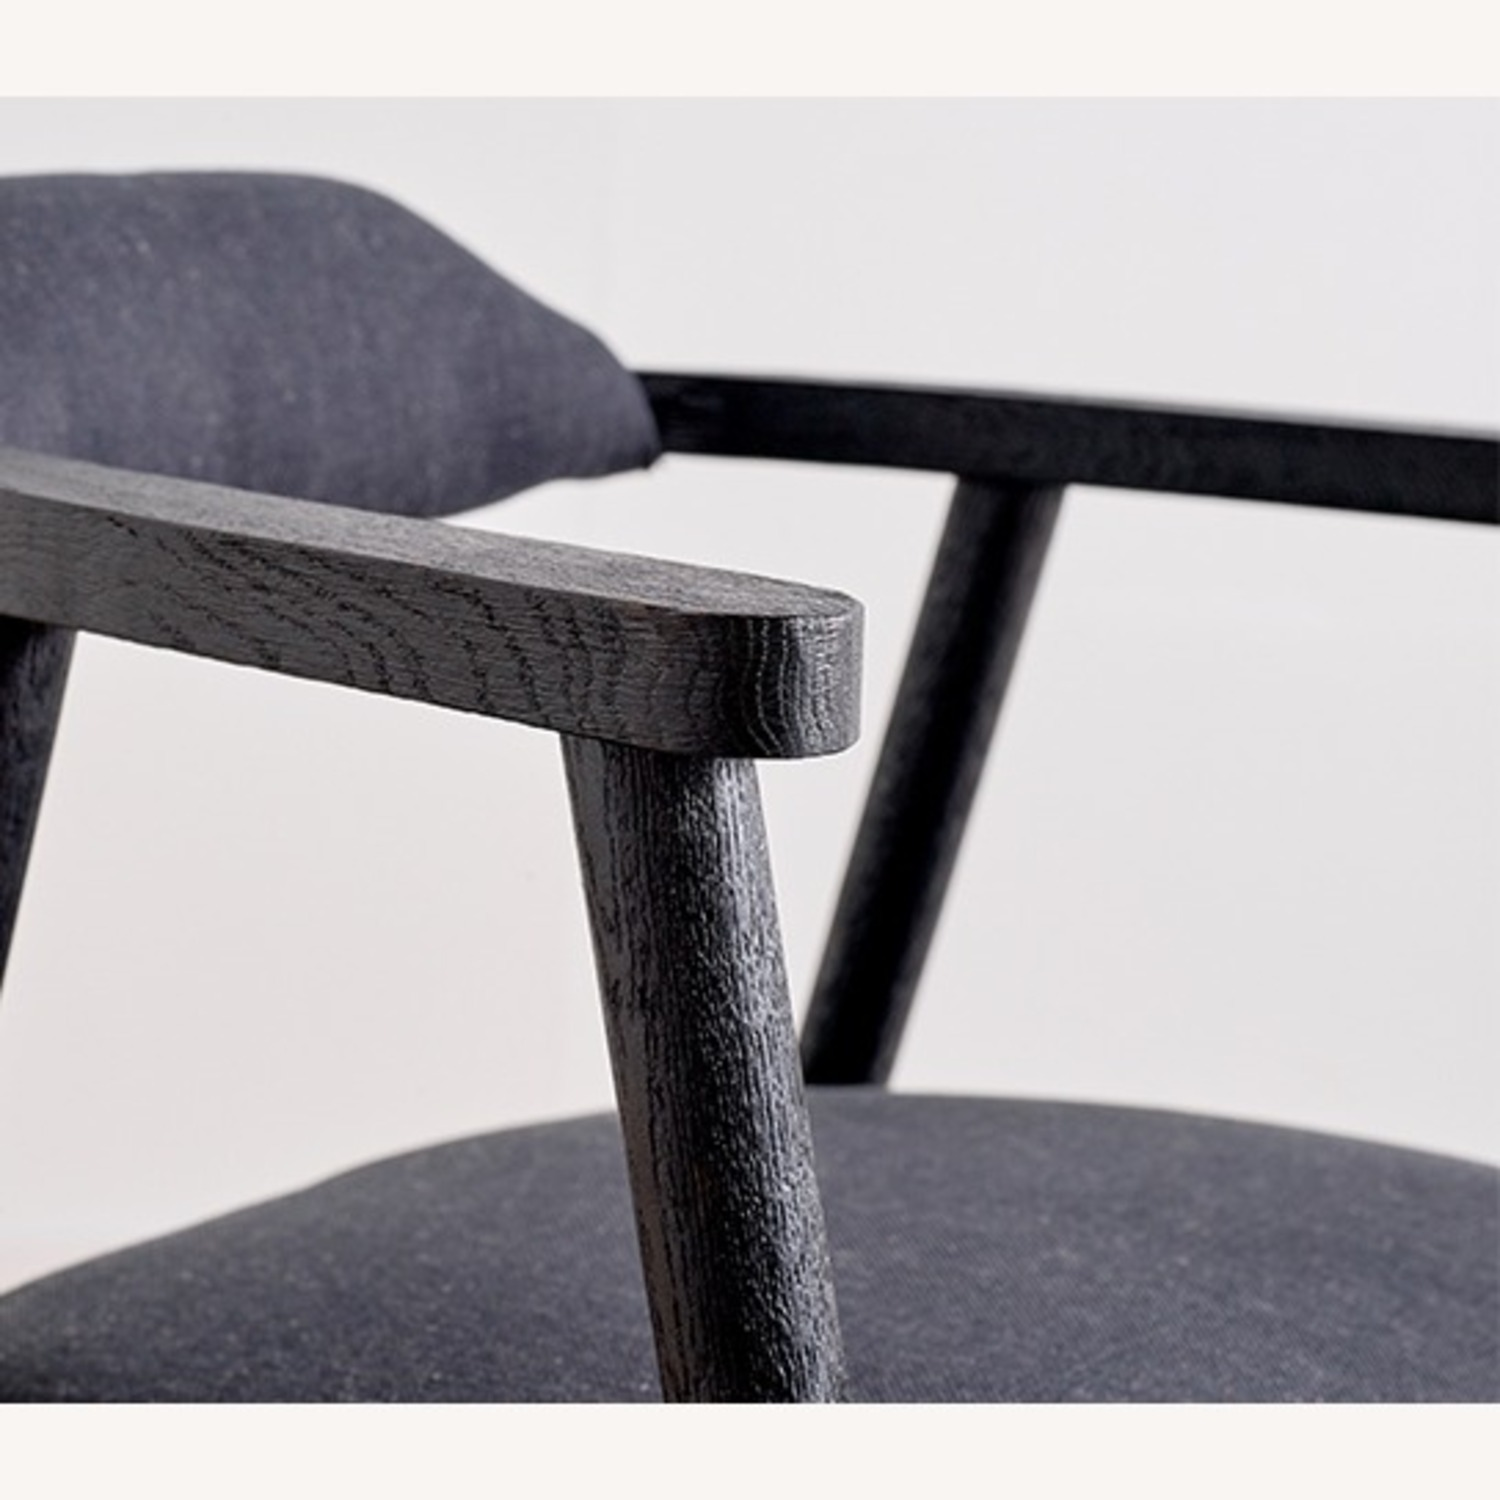 LH Imports Finch Chair - image-3